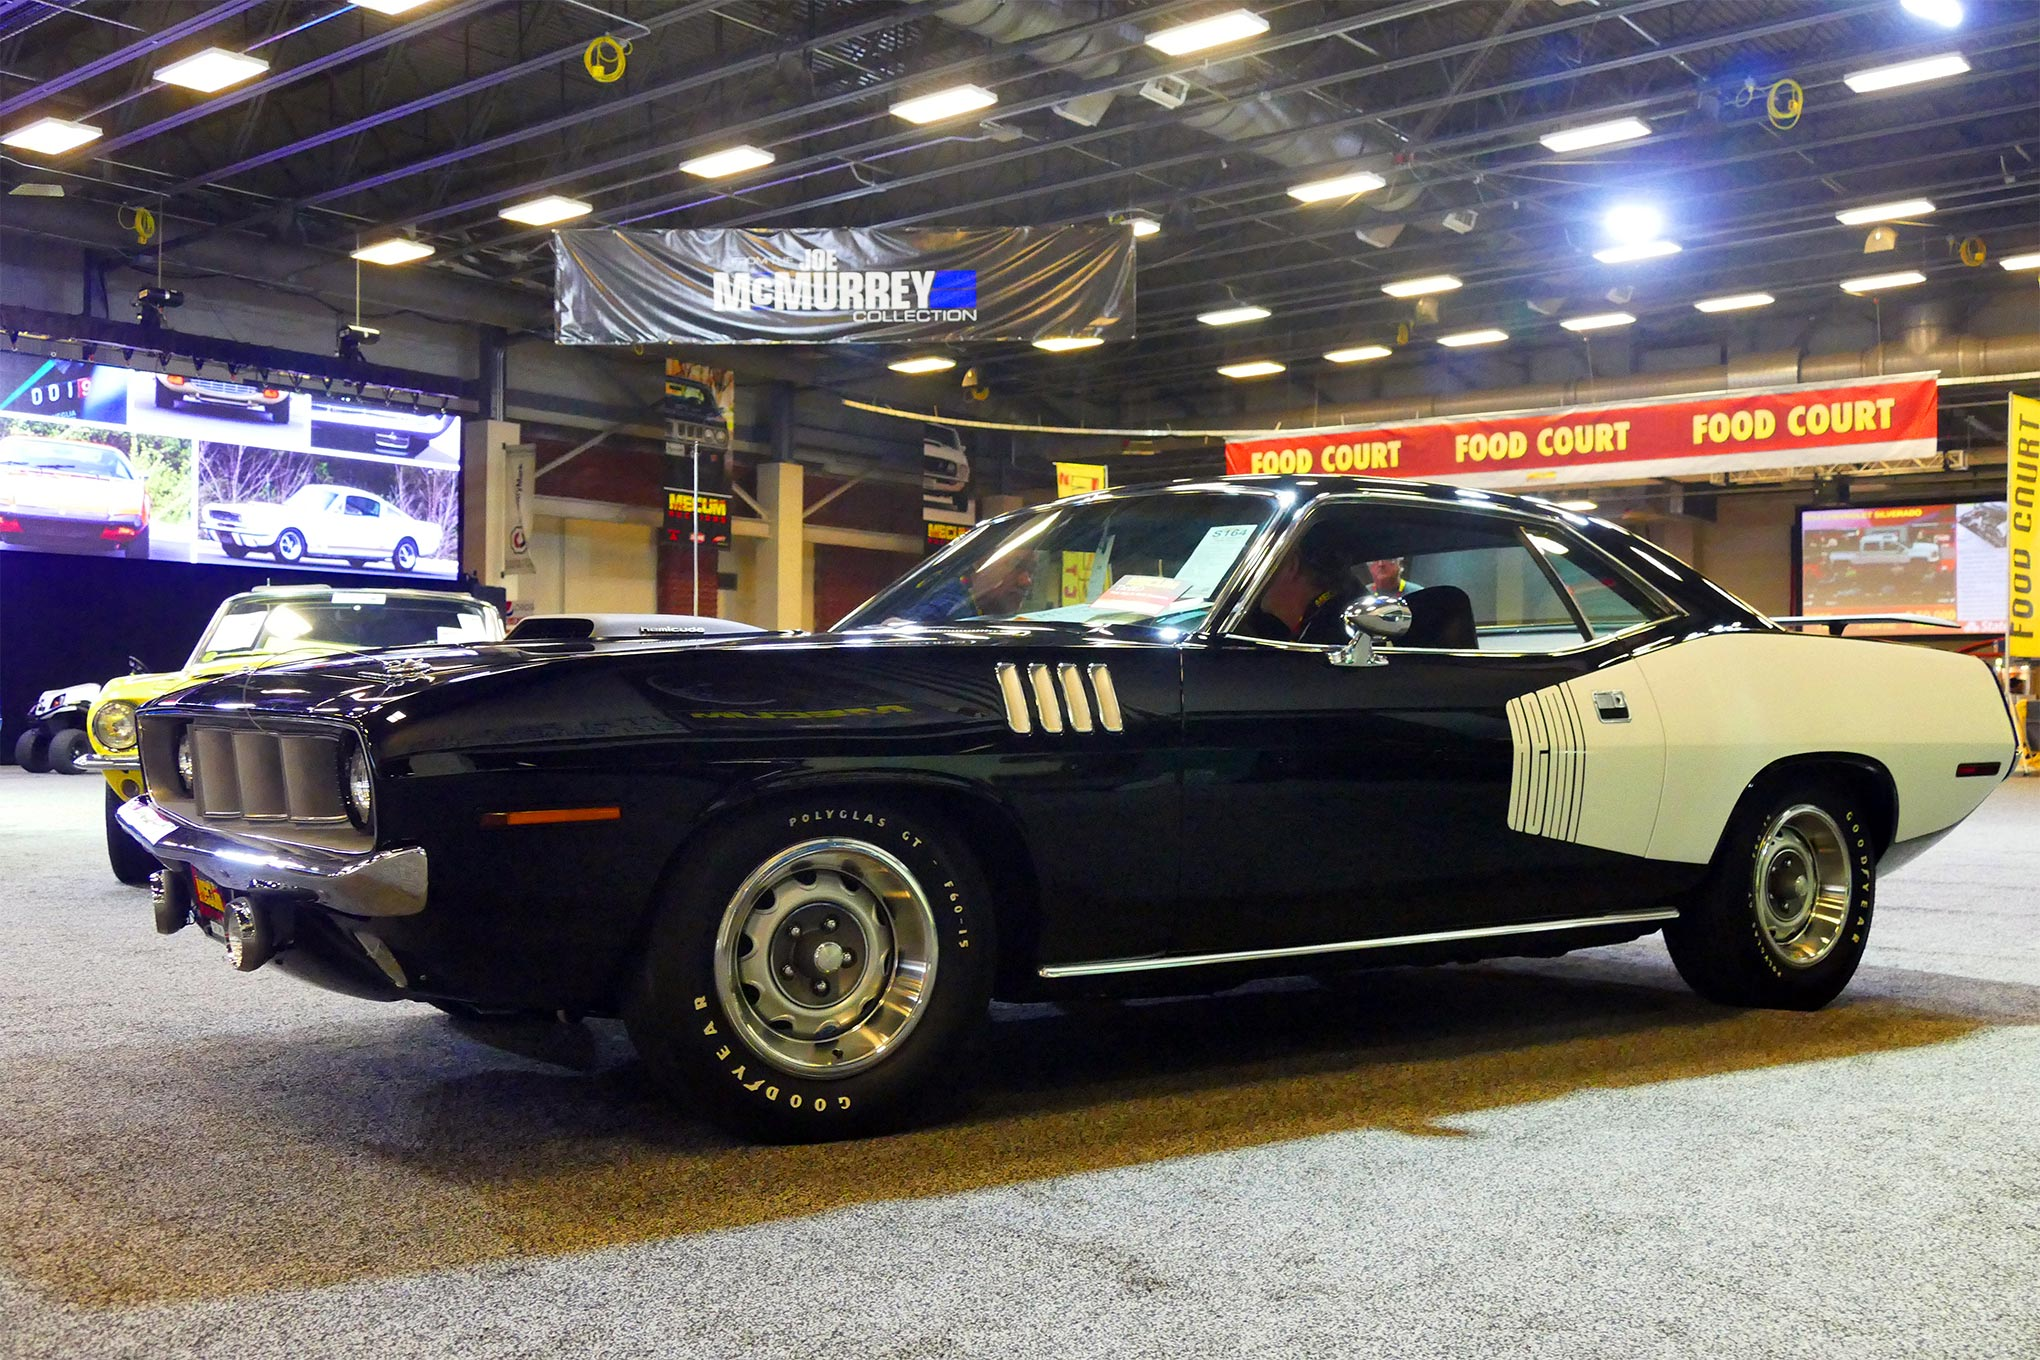 This 1971 Hemi 'Cuda garnered the highest no-sale bid of the weekend (besides the ZL1 and yesterday's Sox & Martin Pro Stock) as $500,000 was offered in spirited bidding during the early afternoon.